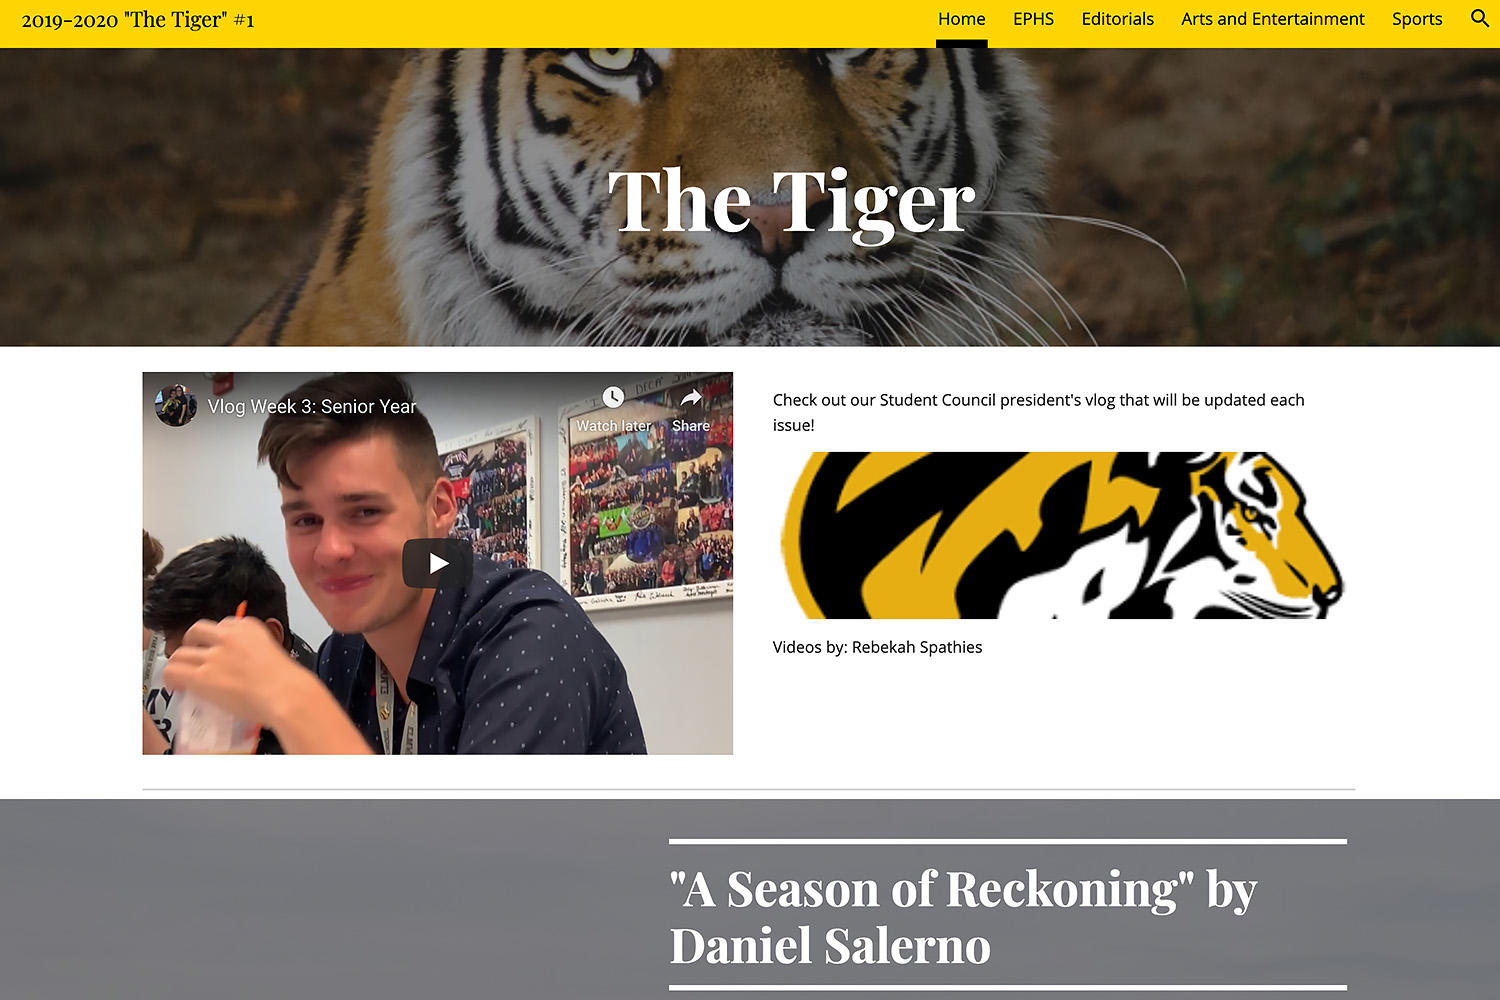 The Tiger student newspaper, Issue 1, September 2019